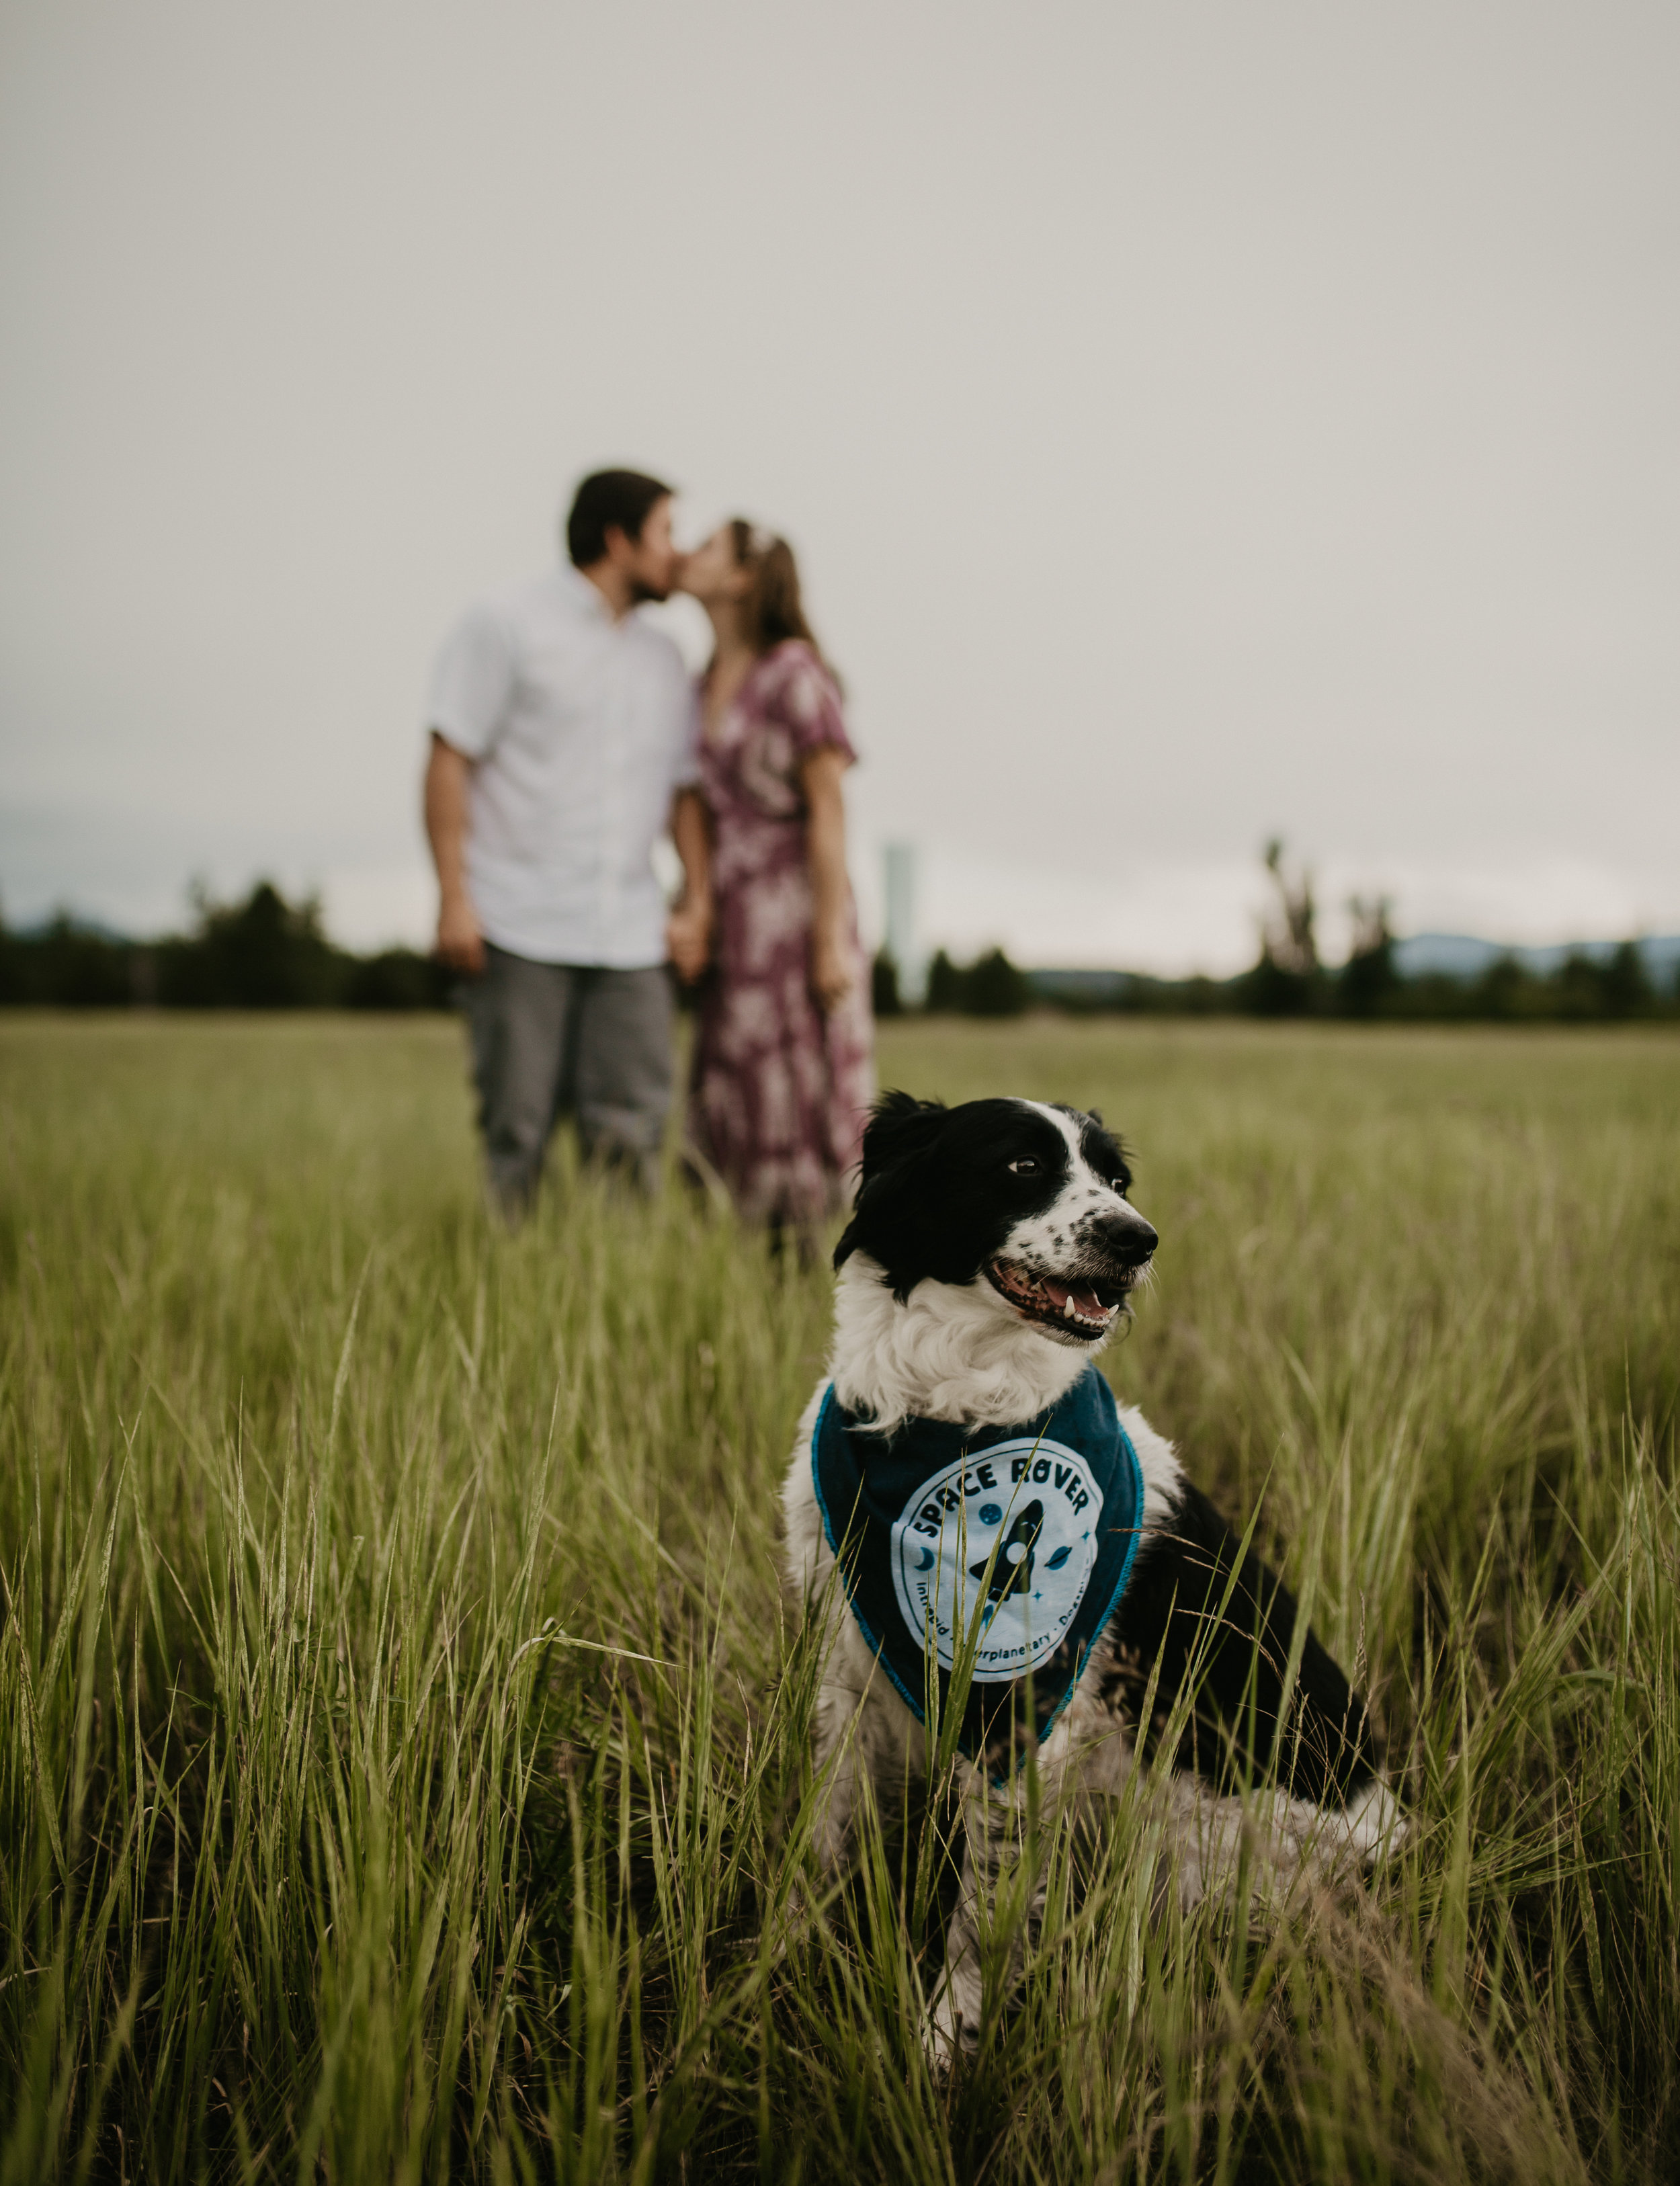 Engagement session with a cute dog